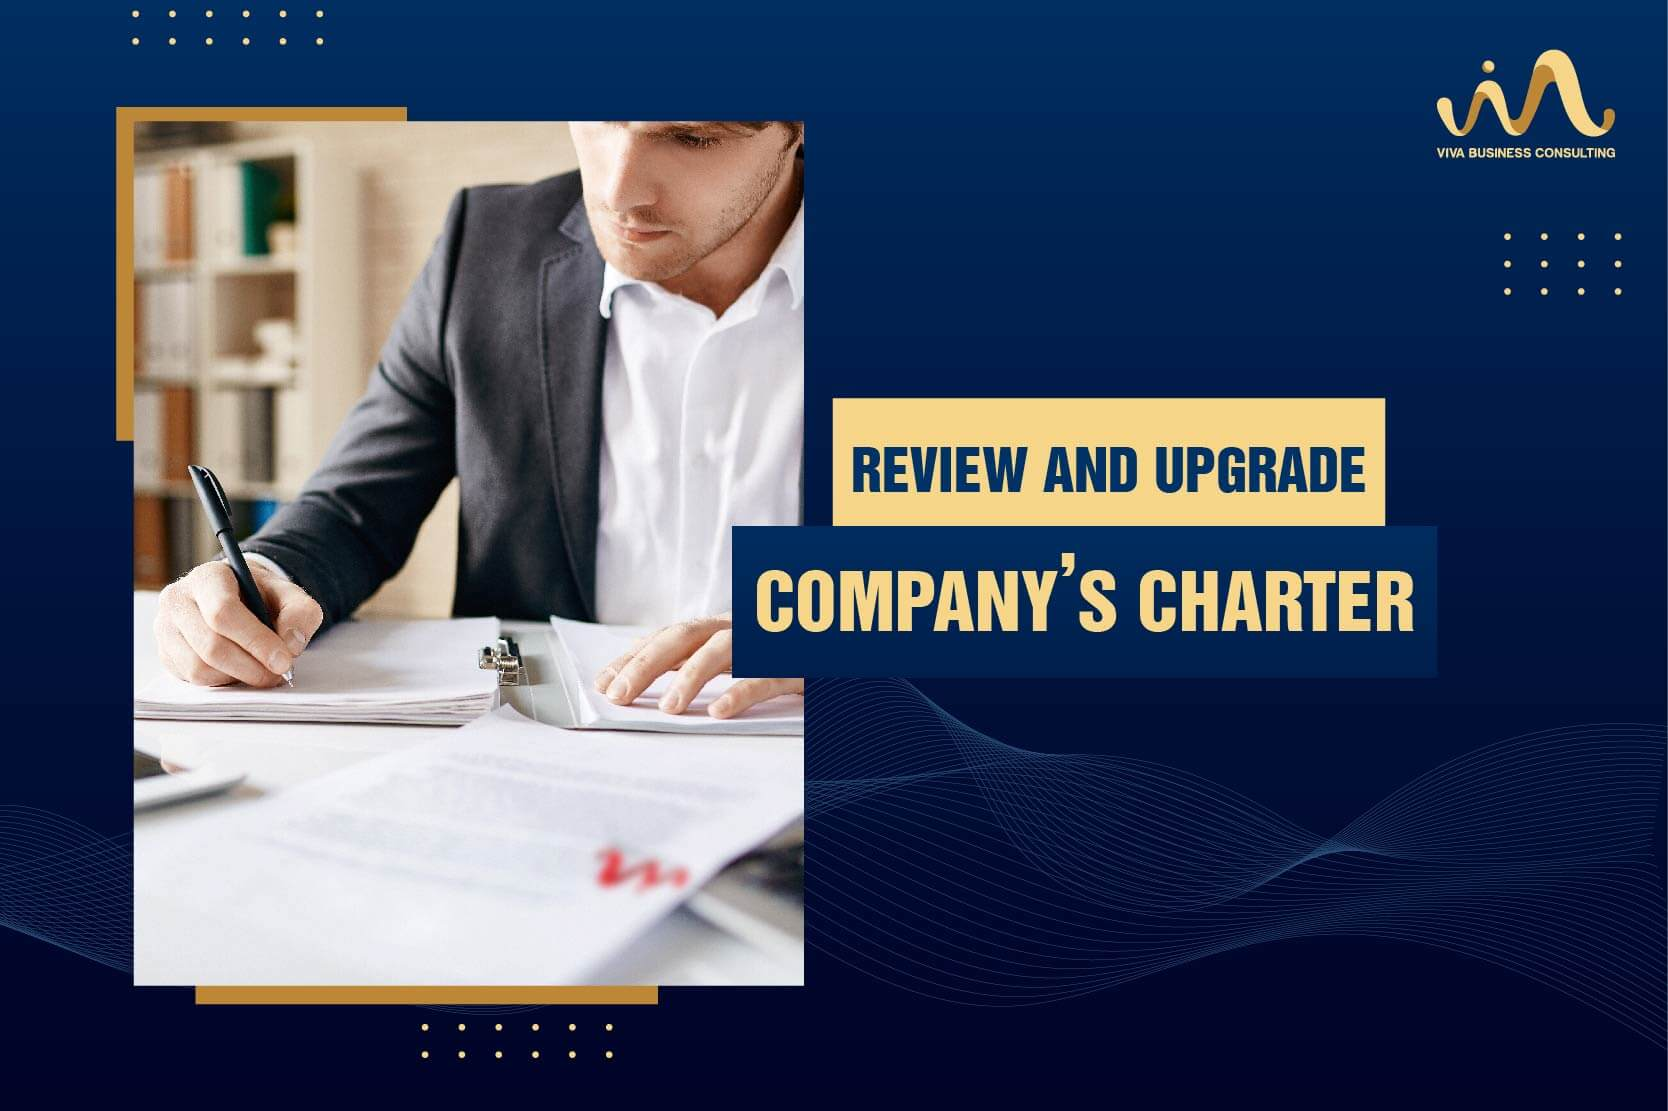 Company Charter en 16112020 - Doing Business In Vietnam: Company's Charter